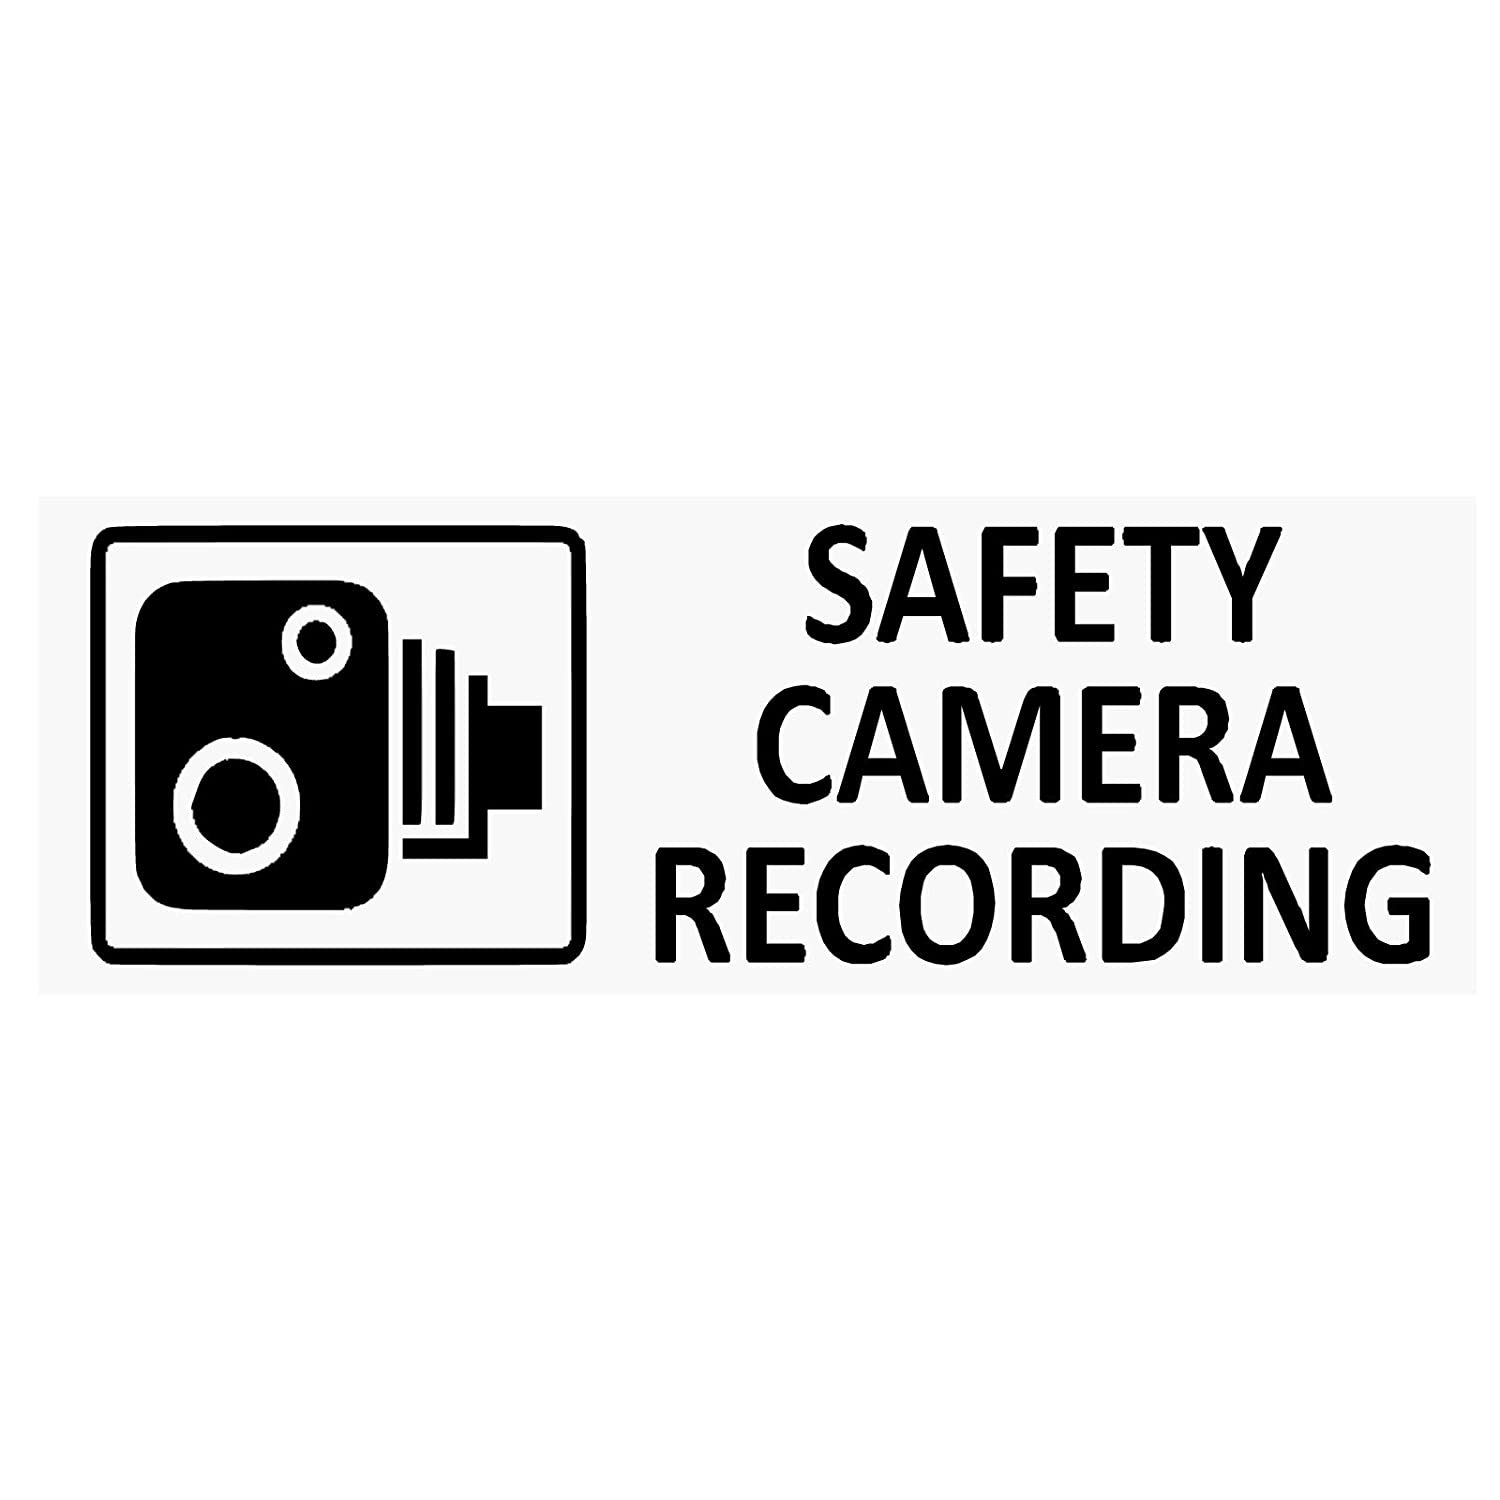 Platinum Place 5 x BLACK SAFETY CAMERA Recording-30x87mm WINDOW Stickers-Vehicle Security Warning Dash Cam Signs-CCTV, Car, Van, Truck, Taxi, Mini Cab, Bus, Coach